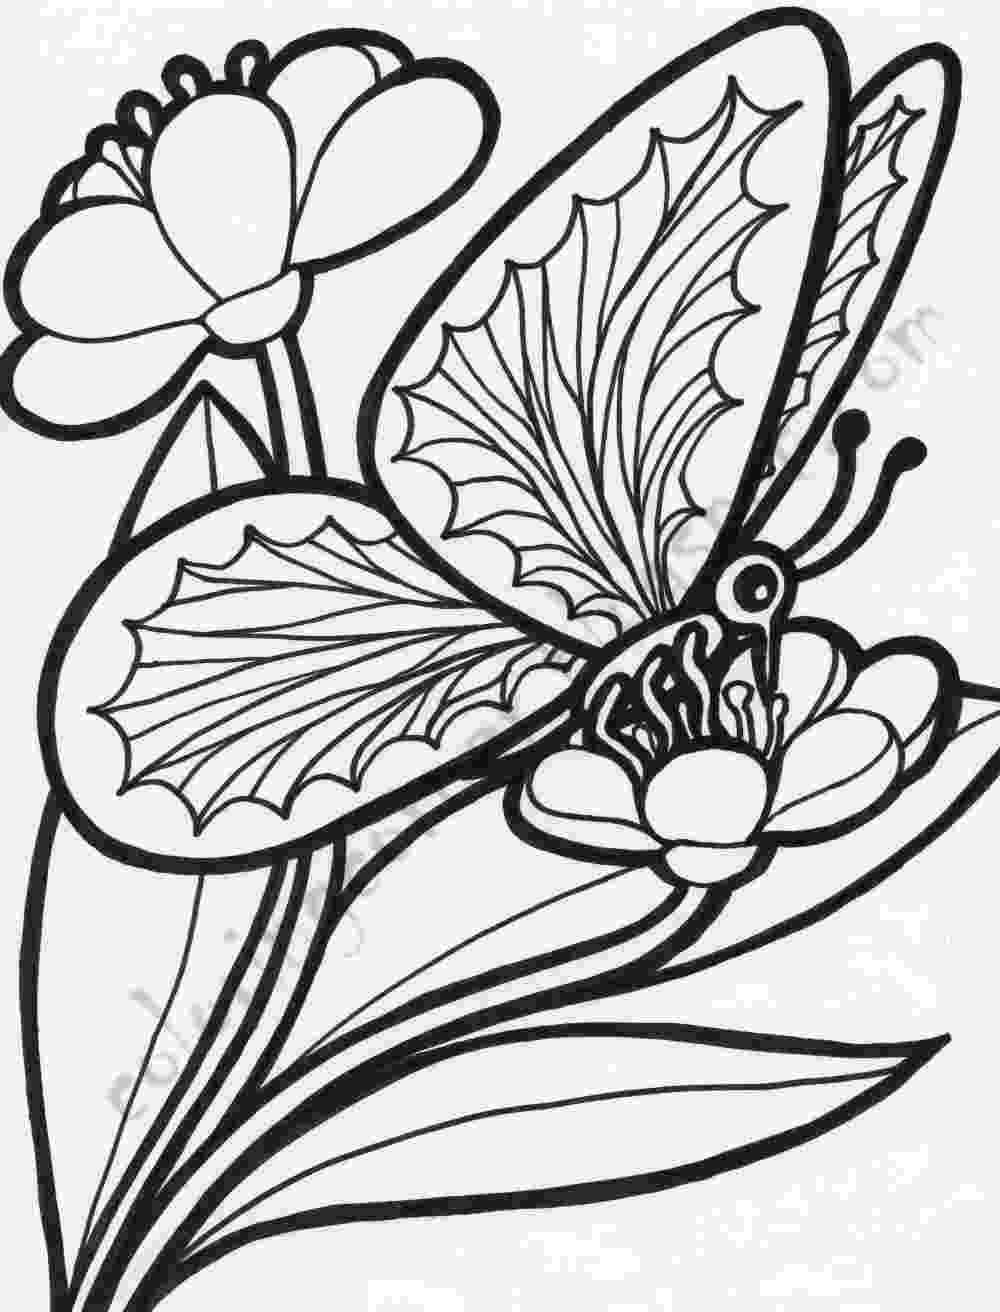 butterfly coloring sheets free printables simple butterfly coloring pages getcoloringpagescom coloring printables butterfly free sheets